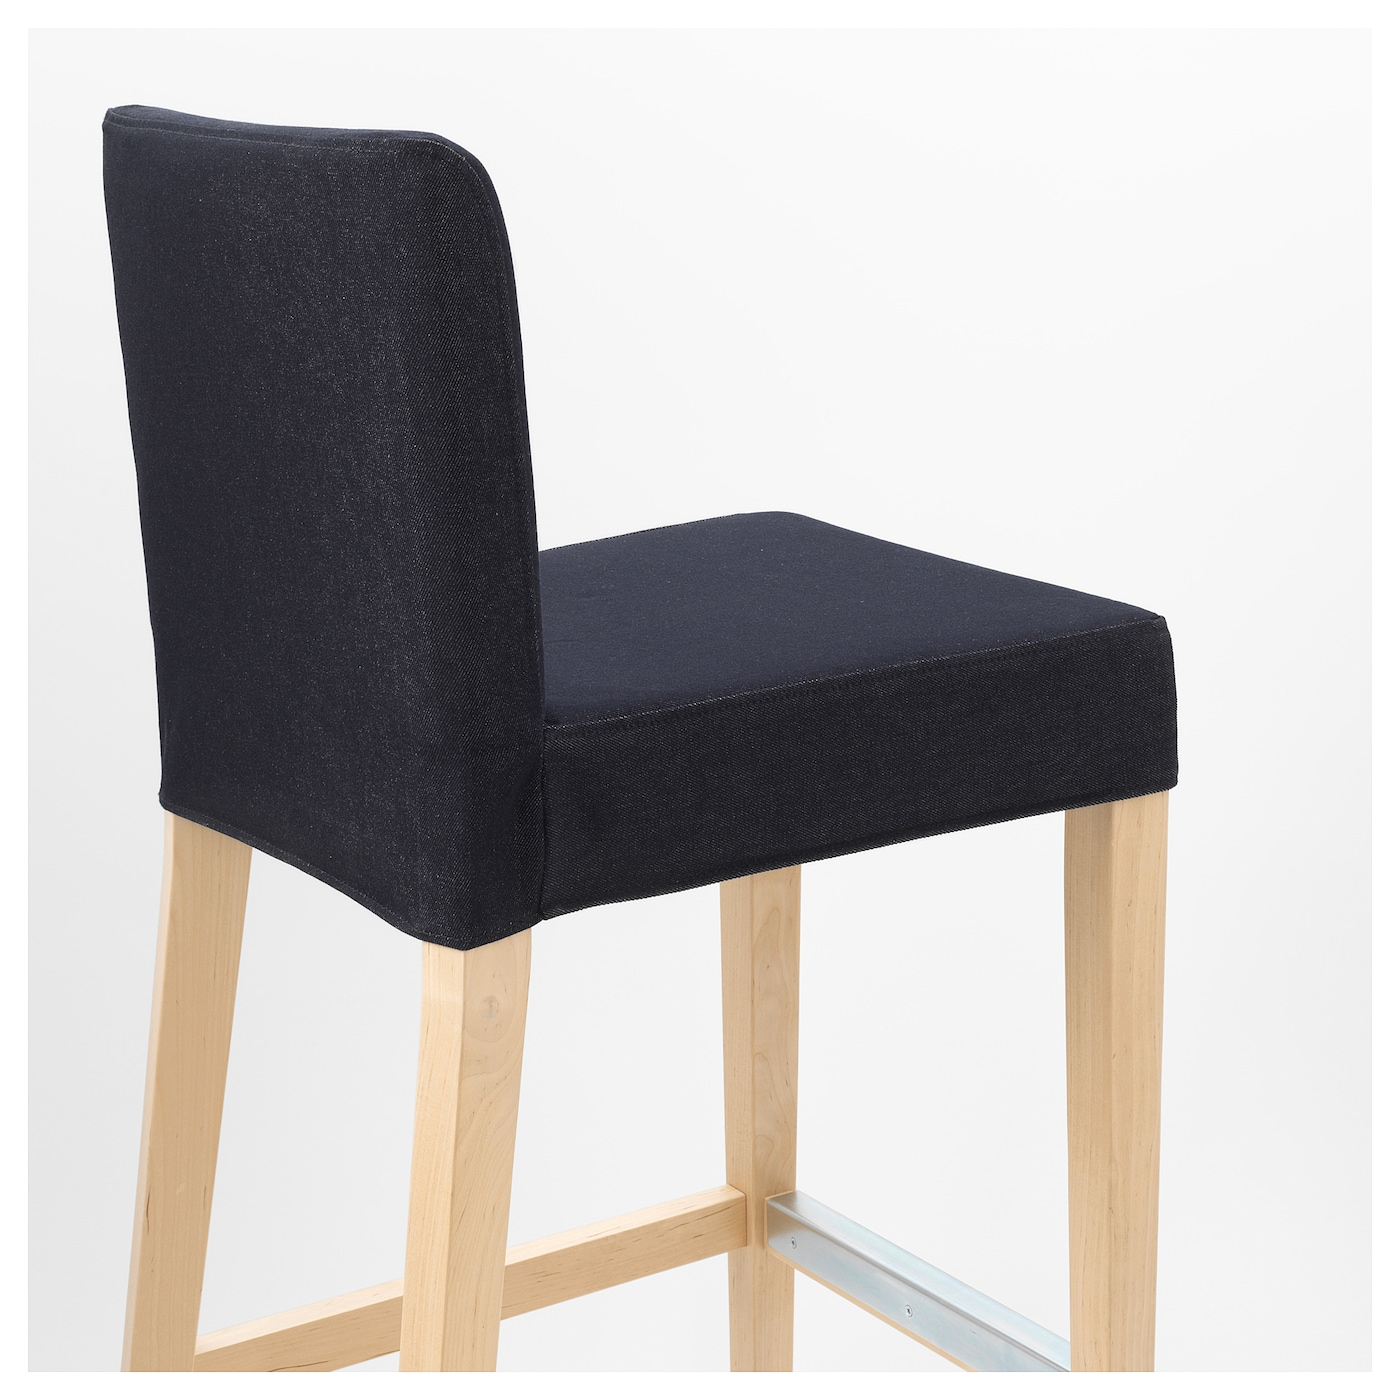 Henriksdal Bar Stool With Backrest Birch Vansta Dark Blue